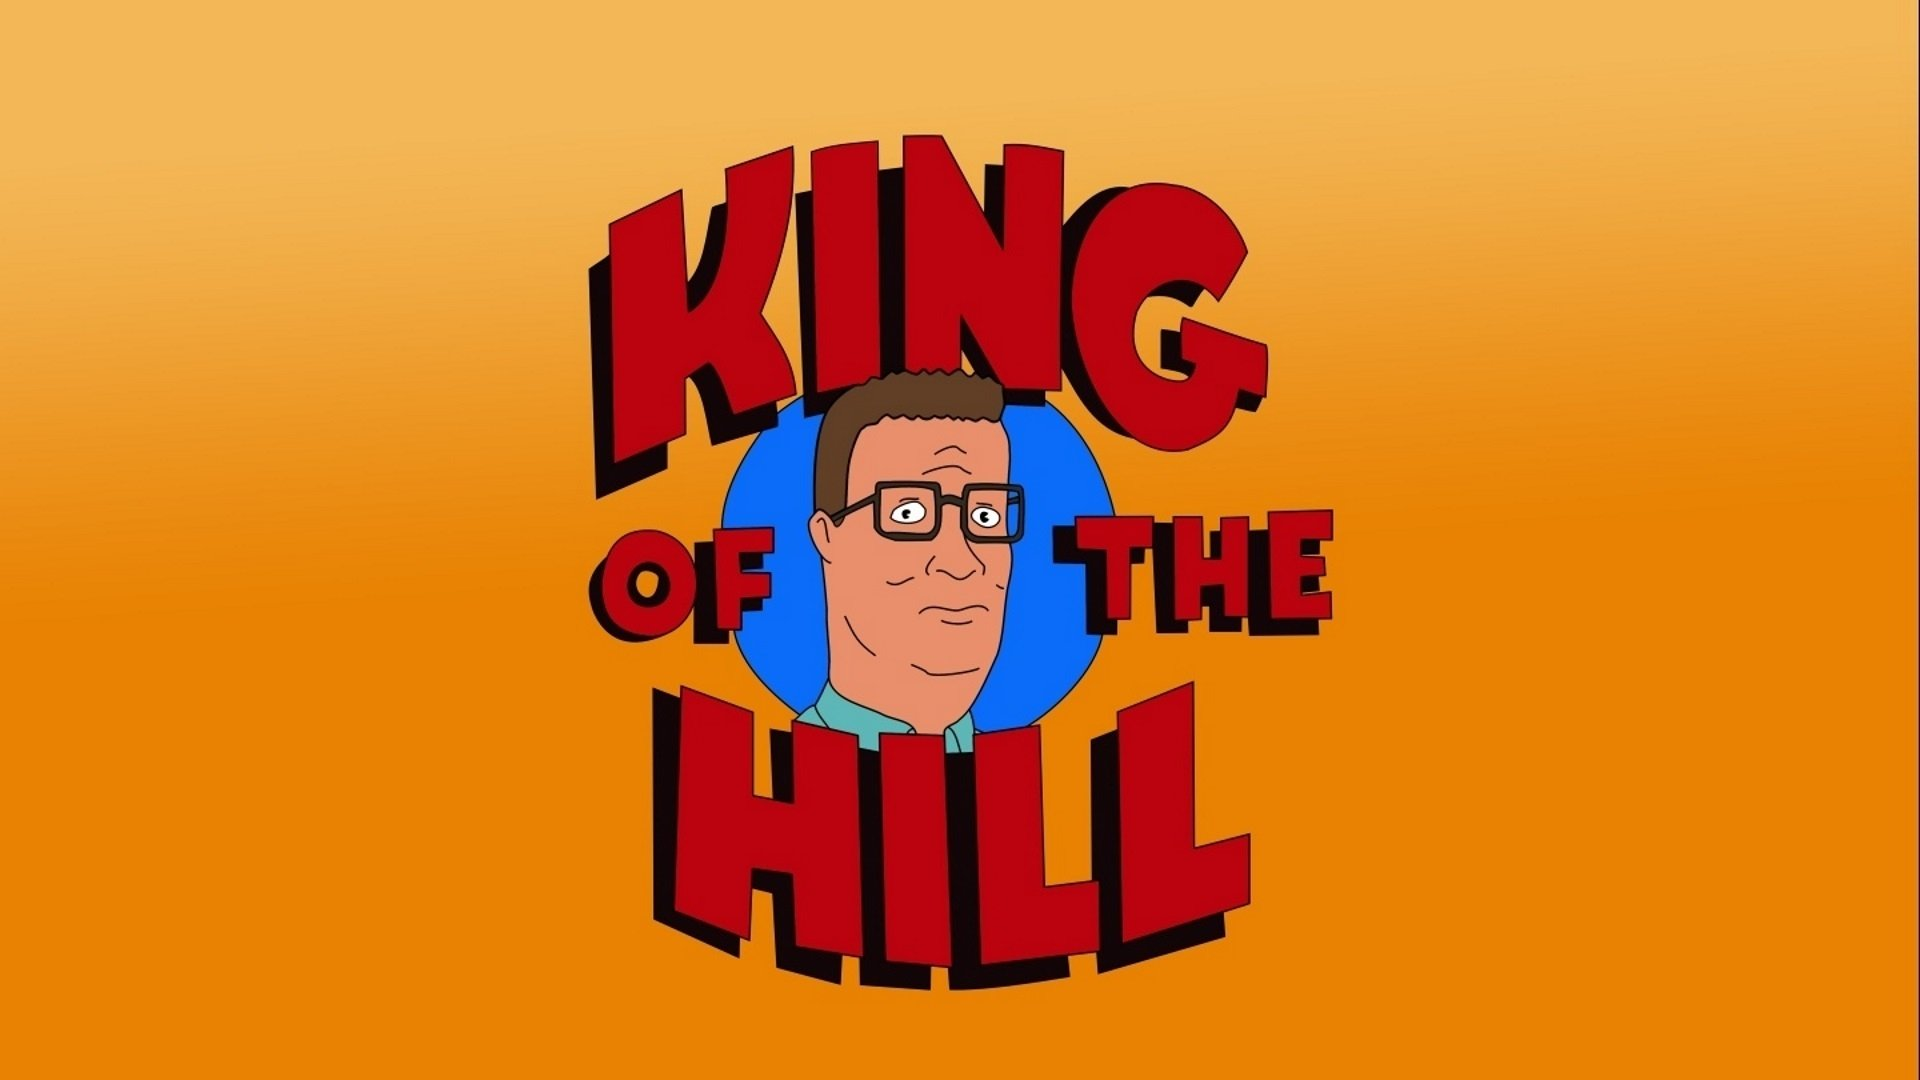 King Of The Hill Hd Wallpaper Background Image